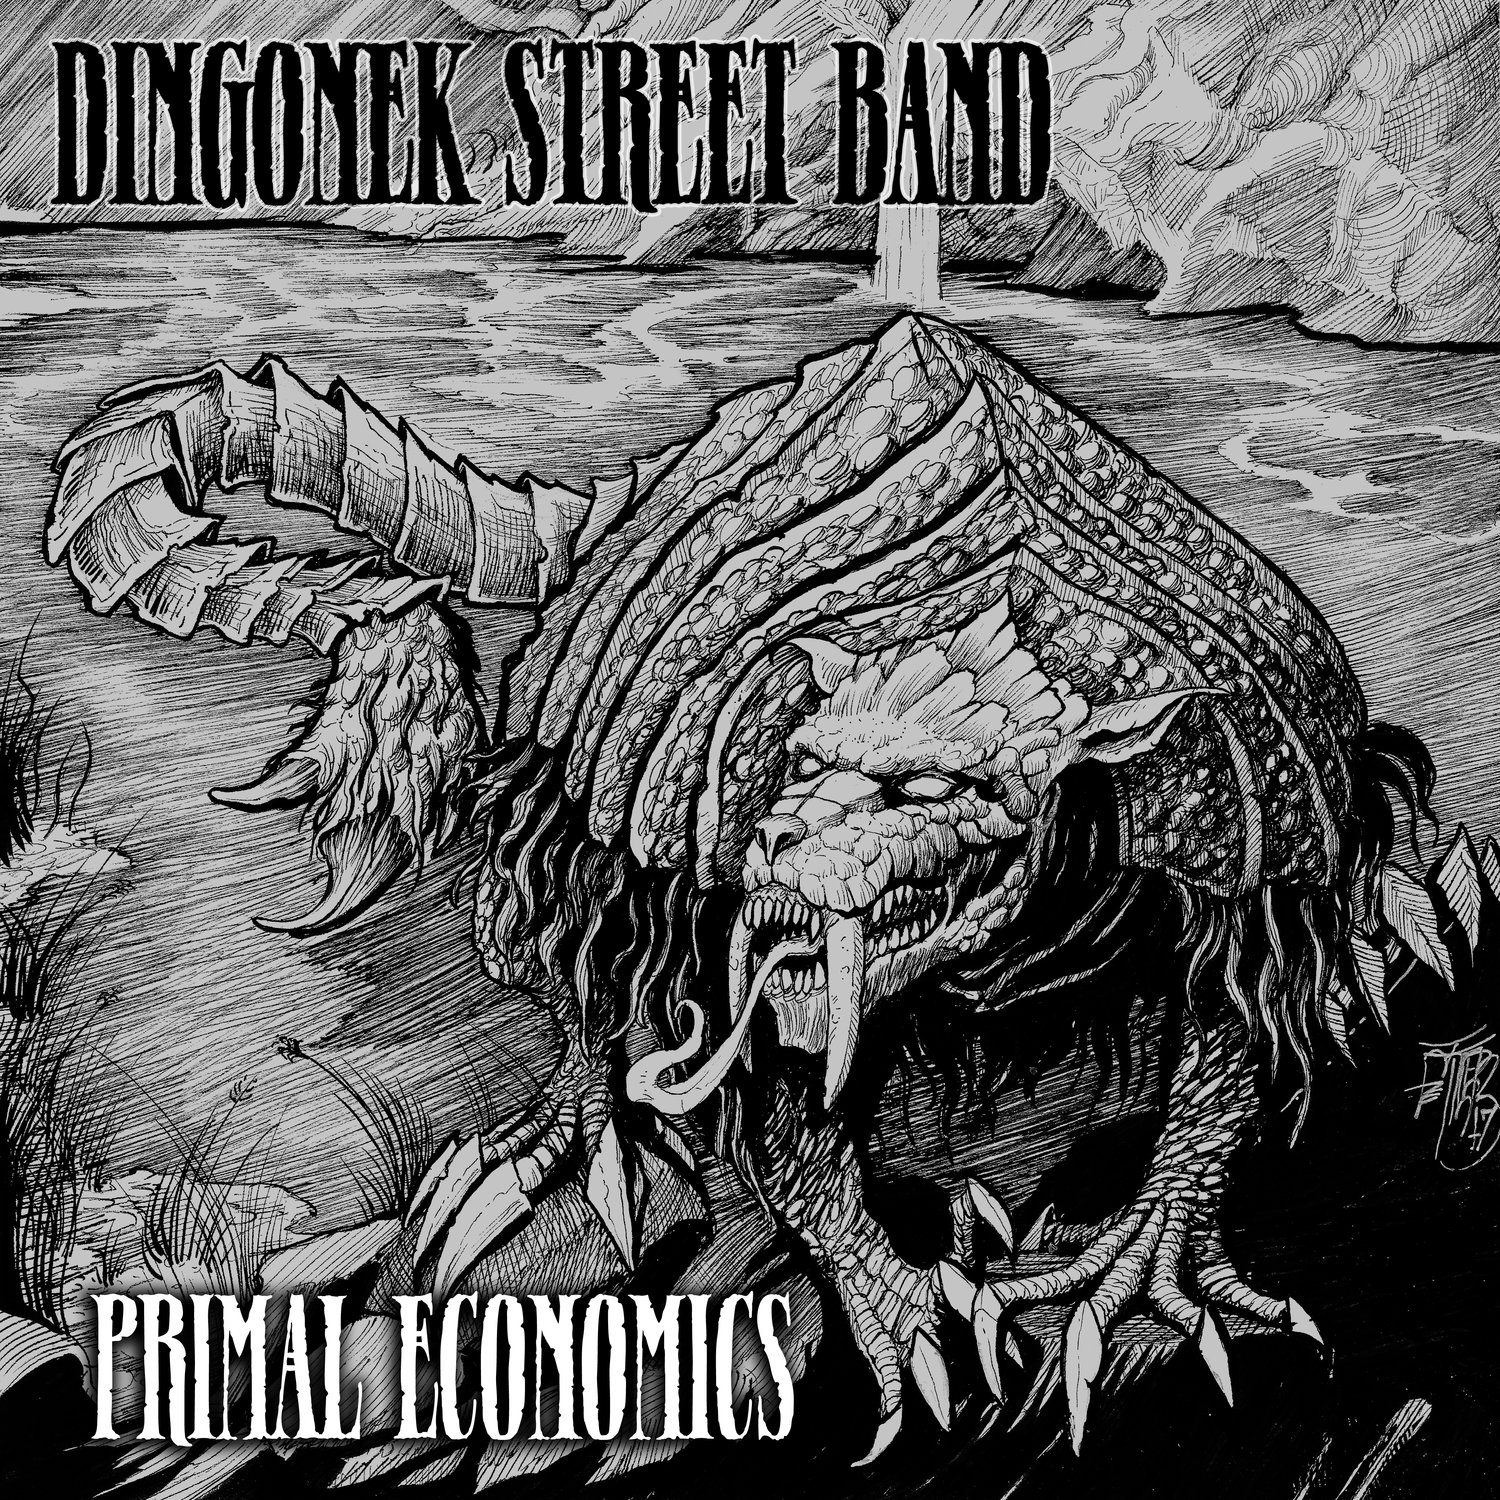 Dingonek Street Band